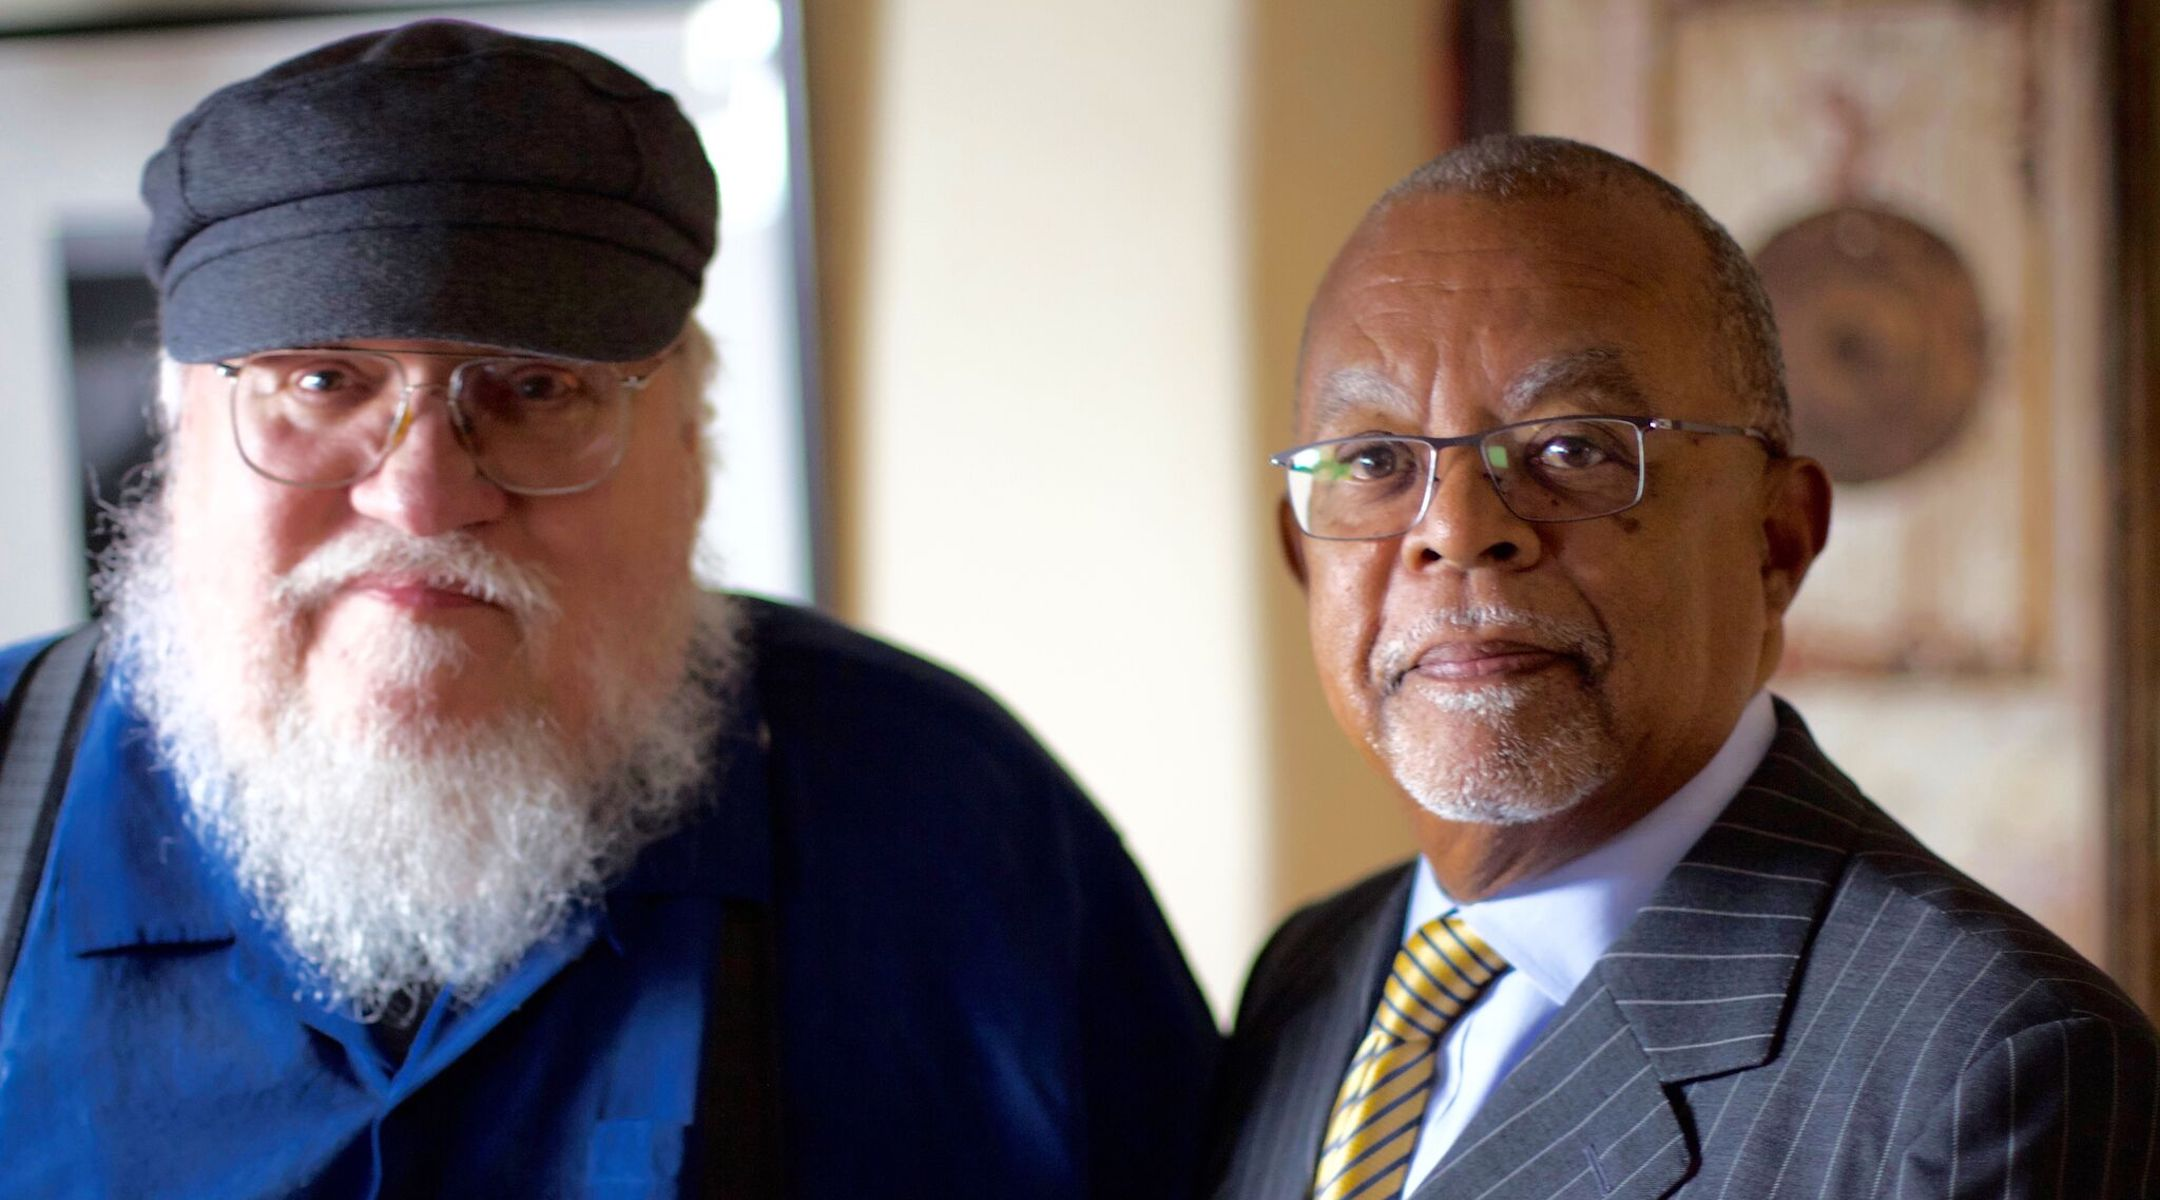 54009c82fb8  Game of Thrones  creator George R.R. Martin discovers he s nearly a  quarter Jewish on  Finding Your Roots